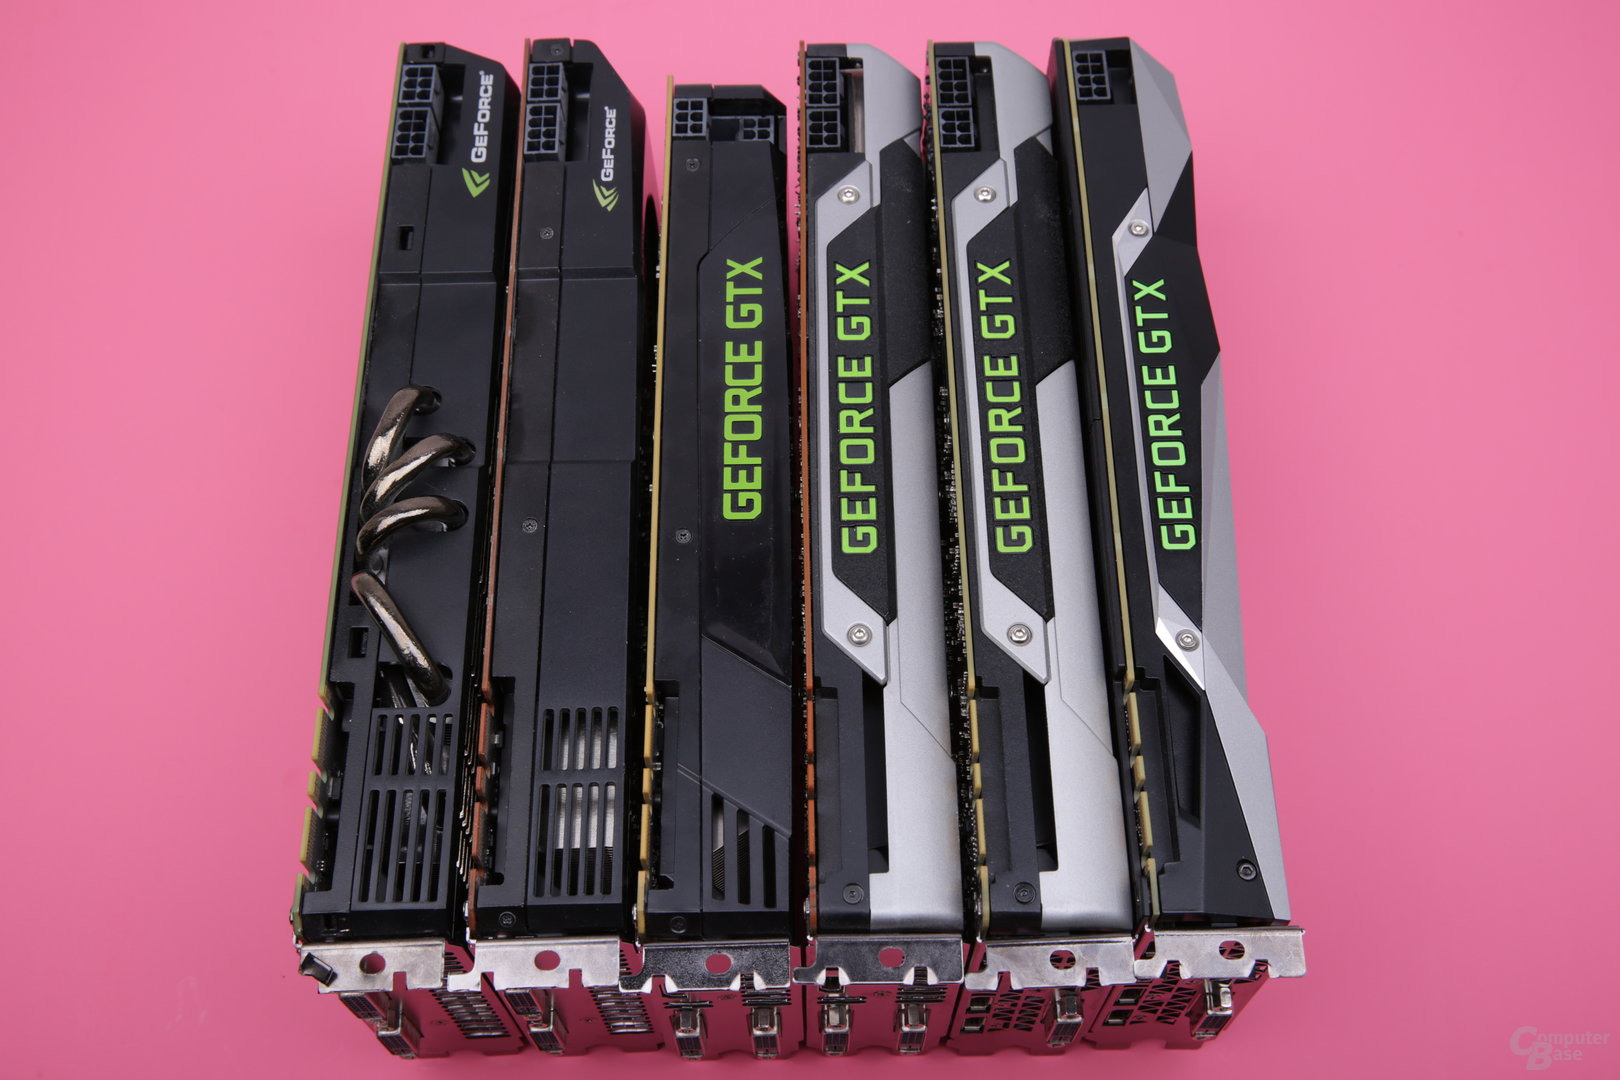 High-End-Grafikkarten von Nvidia seit 2010